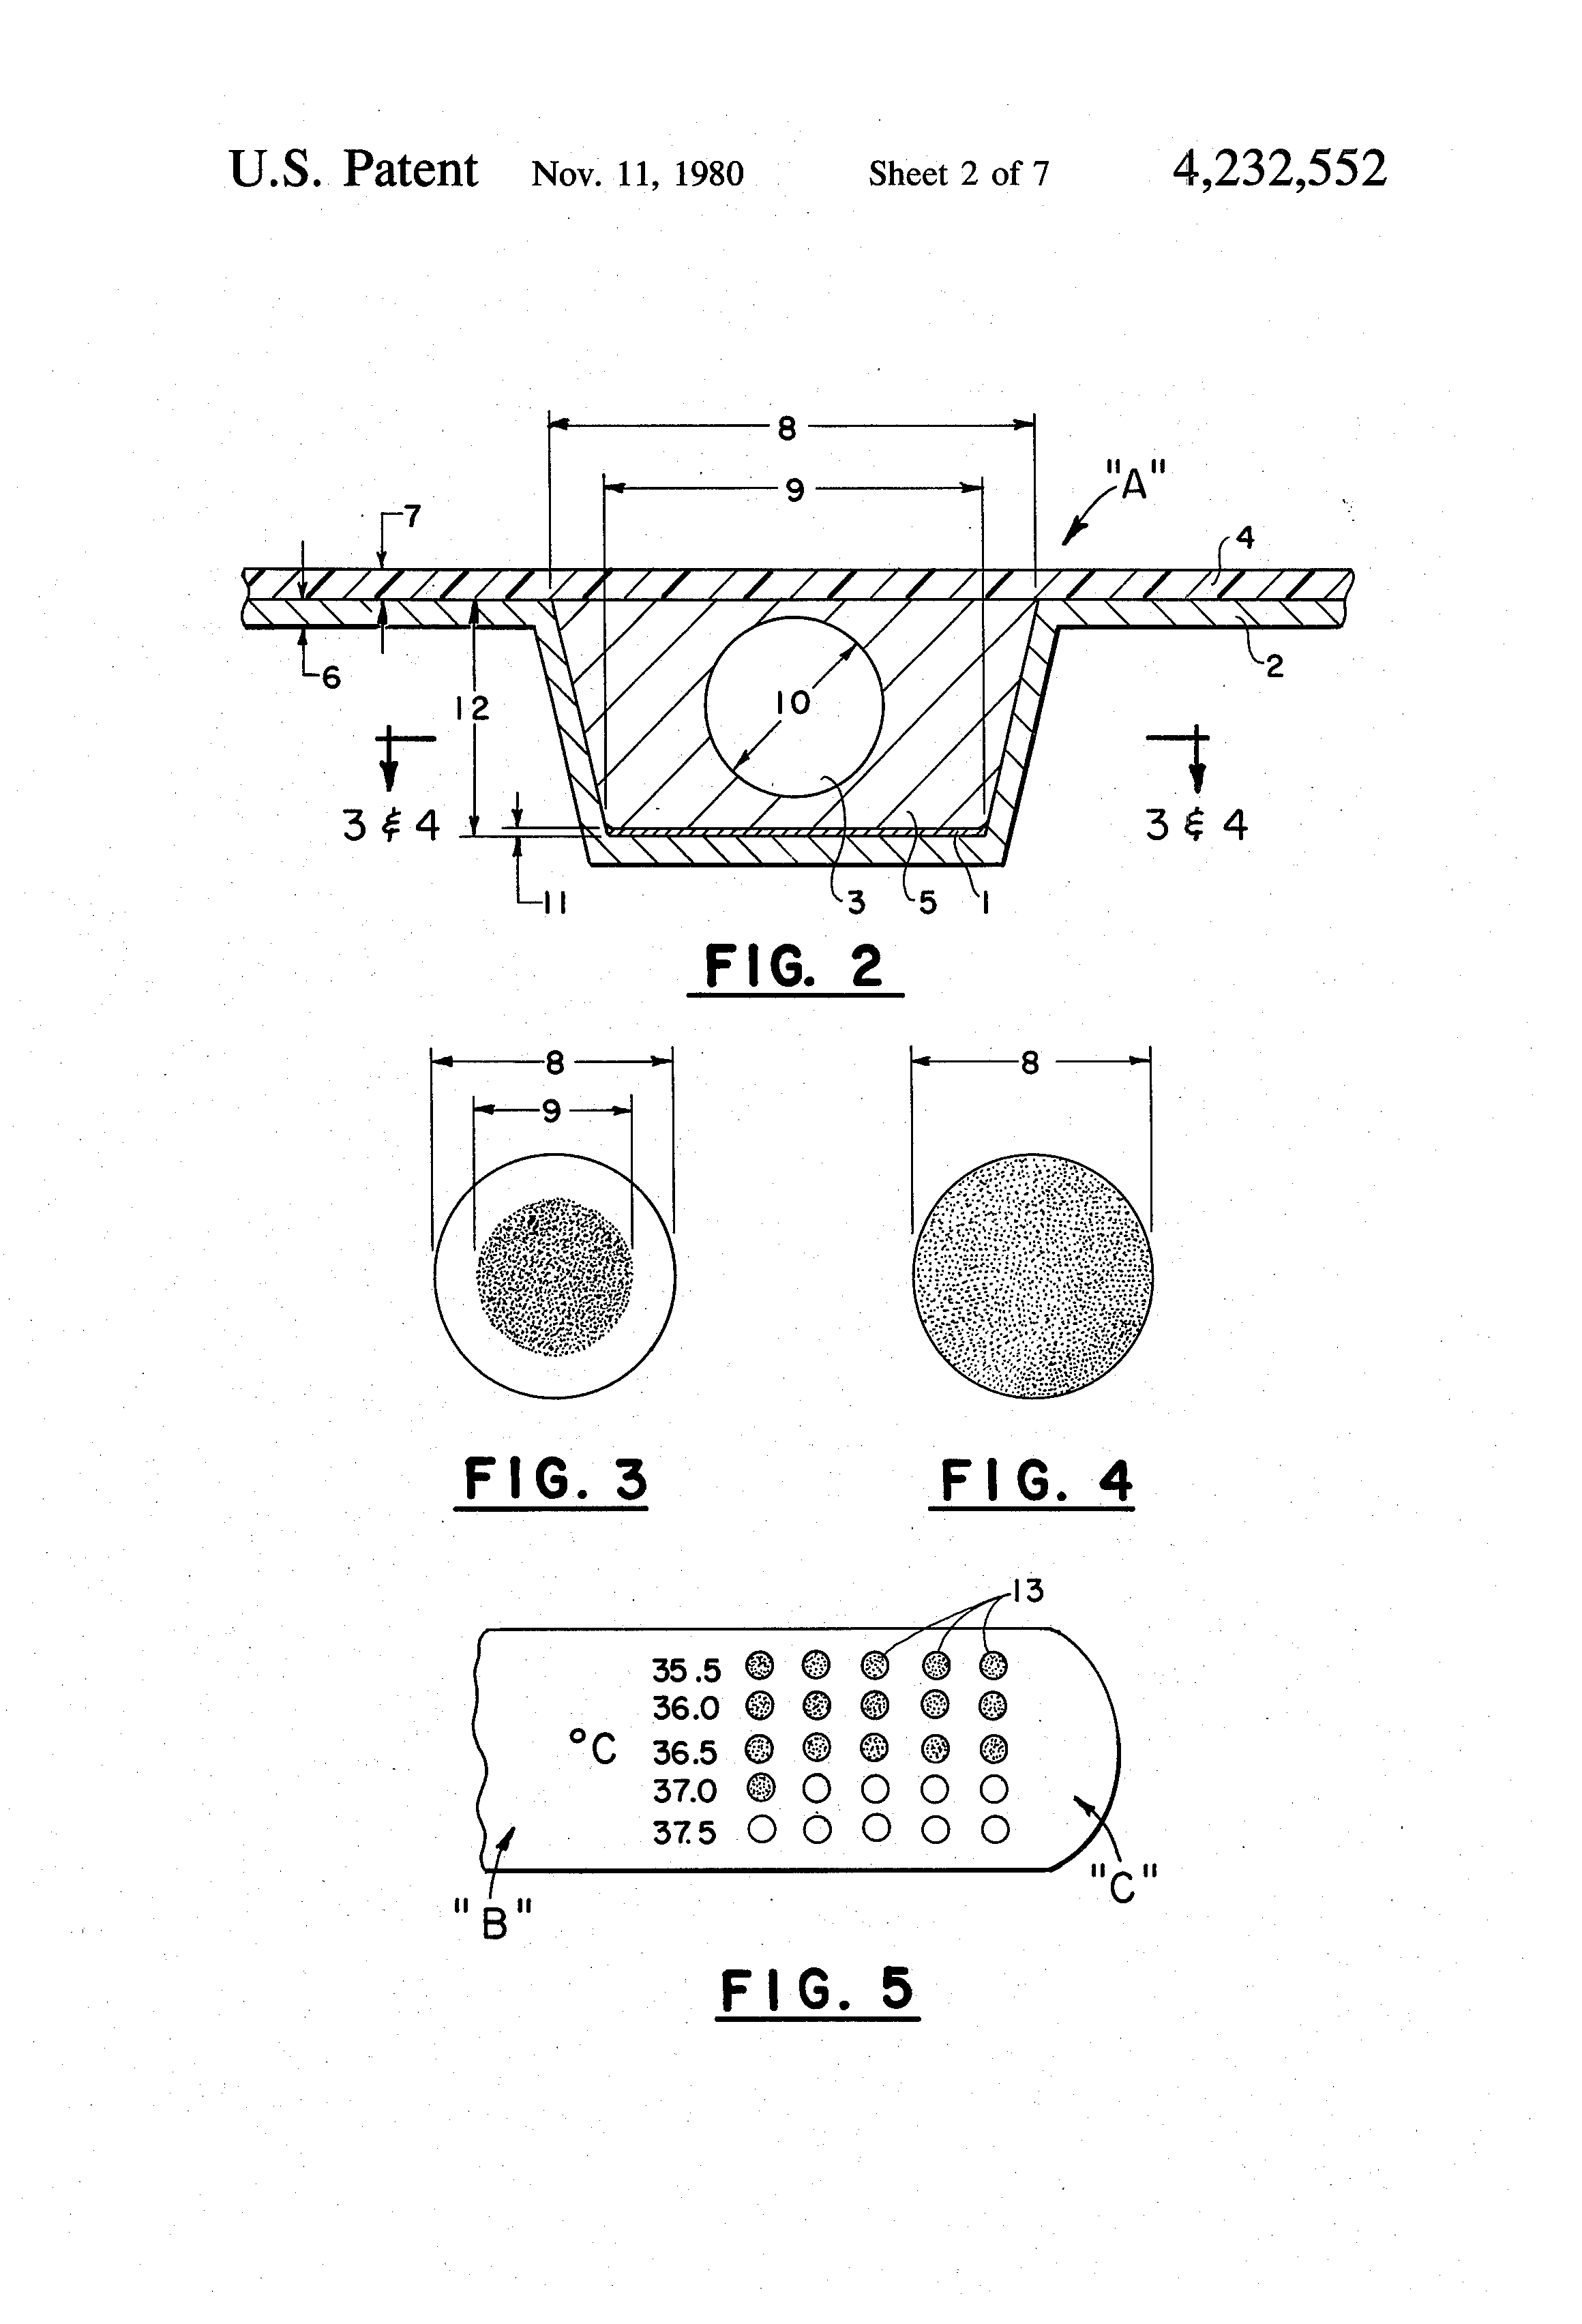 patent drawing - Coloration Martine Mah Composition